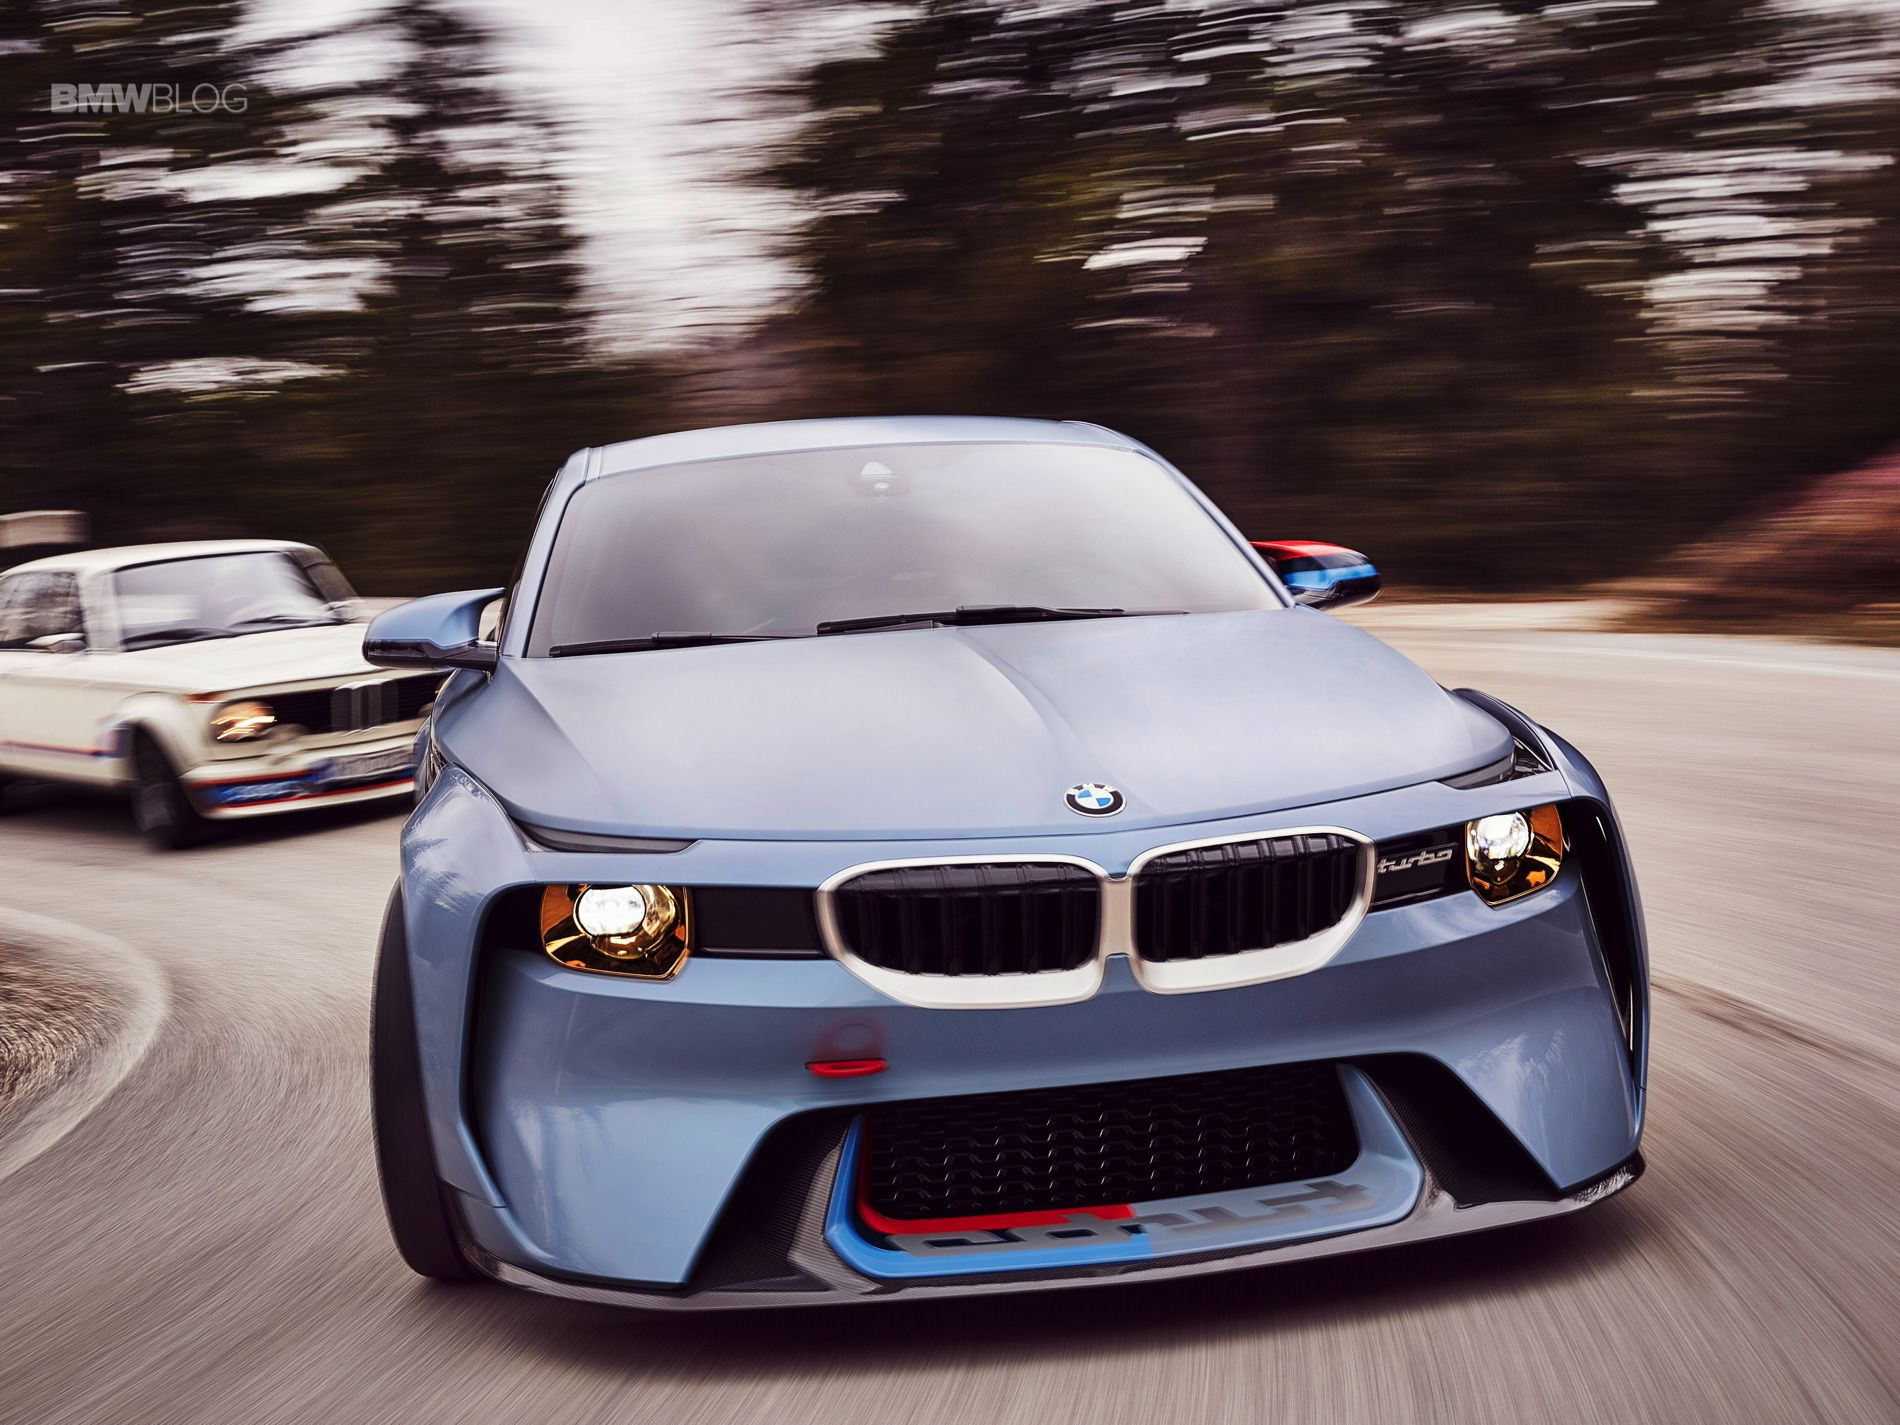 The World Premiere Of The Bmw 2002 Hommage A Beautiful Design